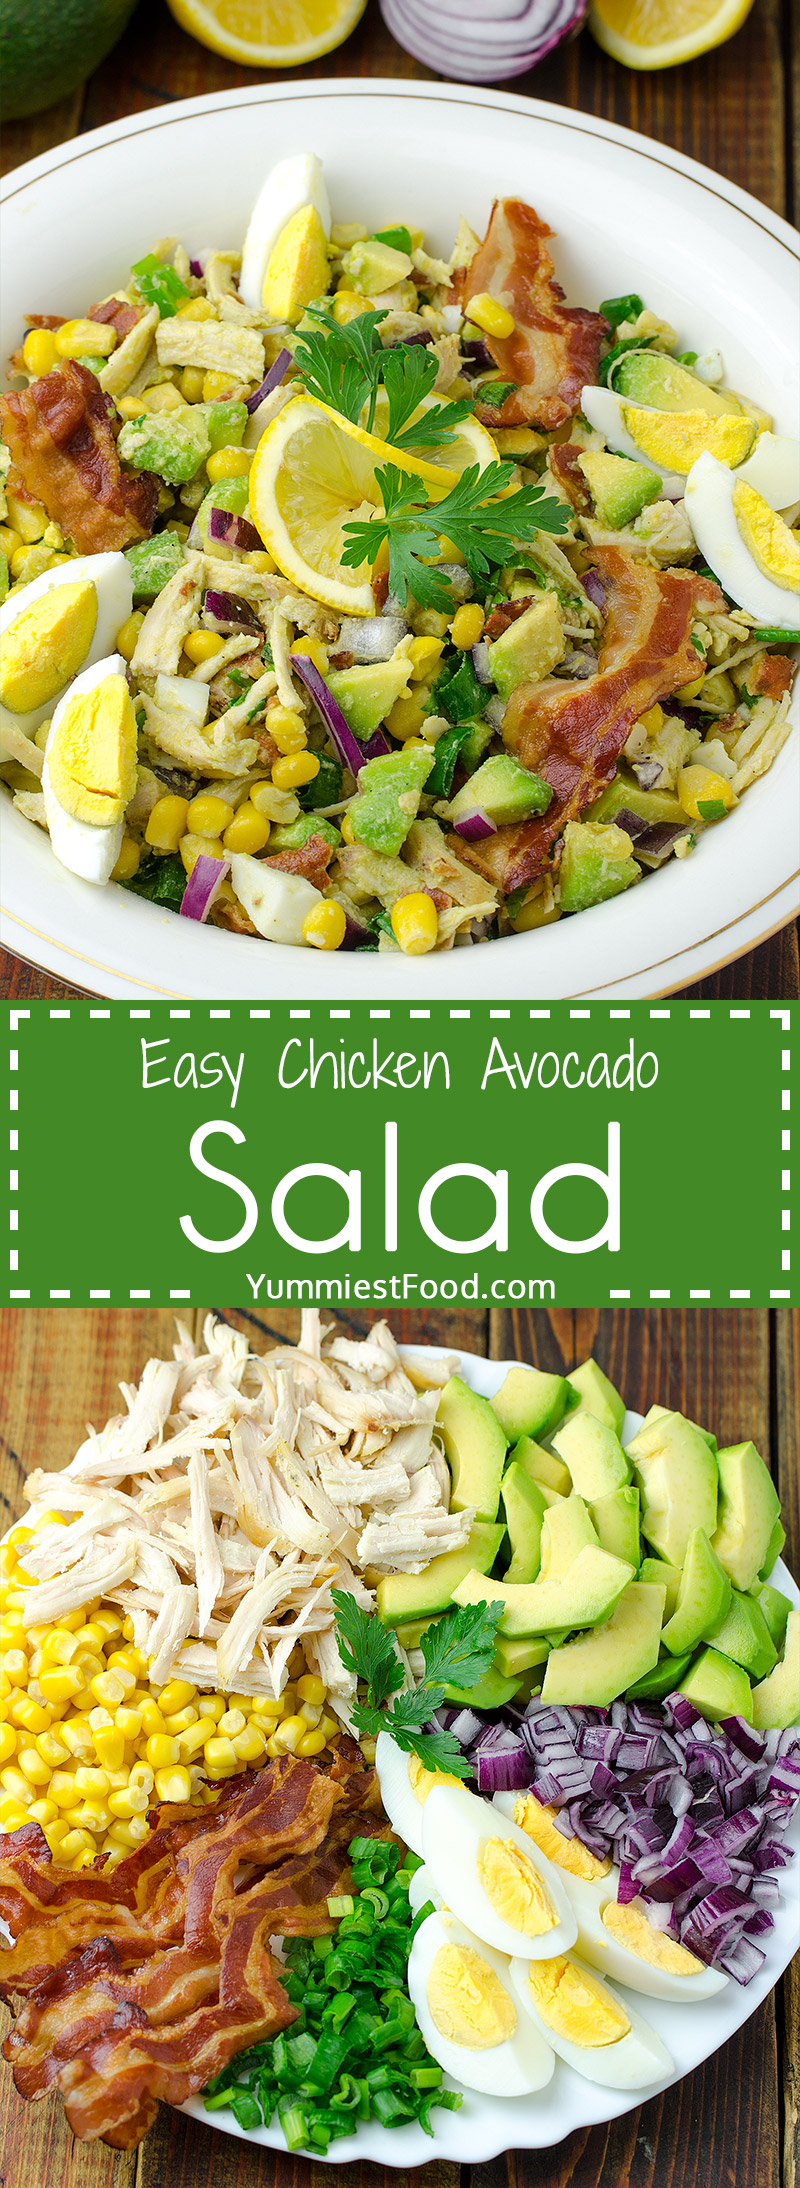 EASY CHICKEN AVOCADO SALAD - A perfect salad to throw together at any time of the day with No Cooking